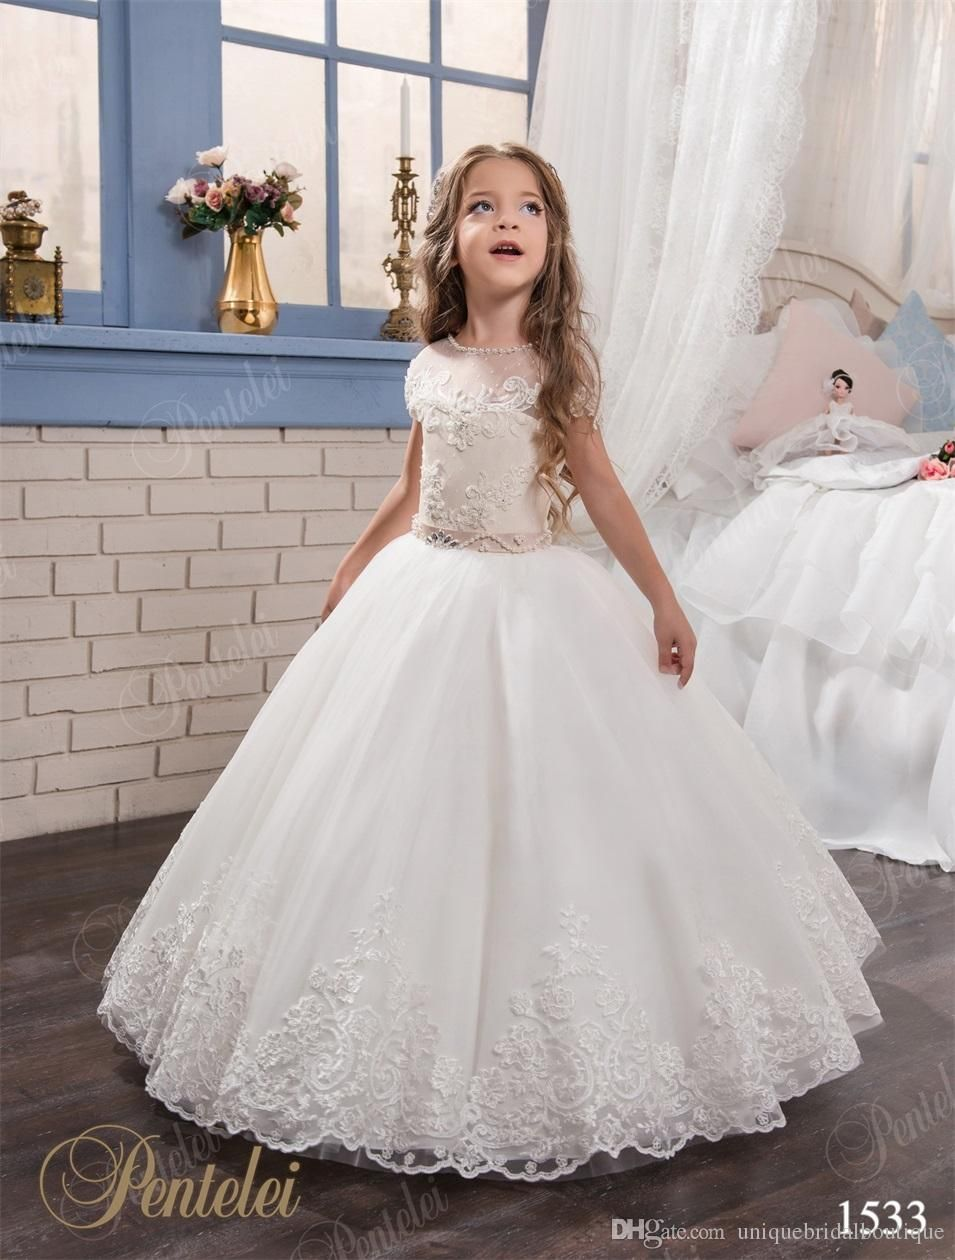 Pin on Flower Girls Dresses \u0026 Girls Pageant Dresses